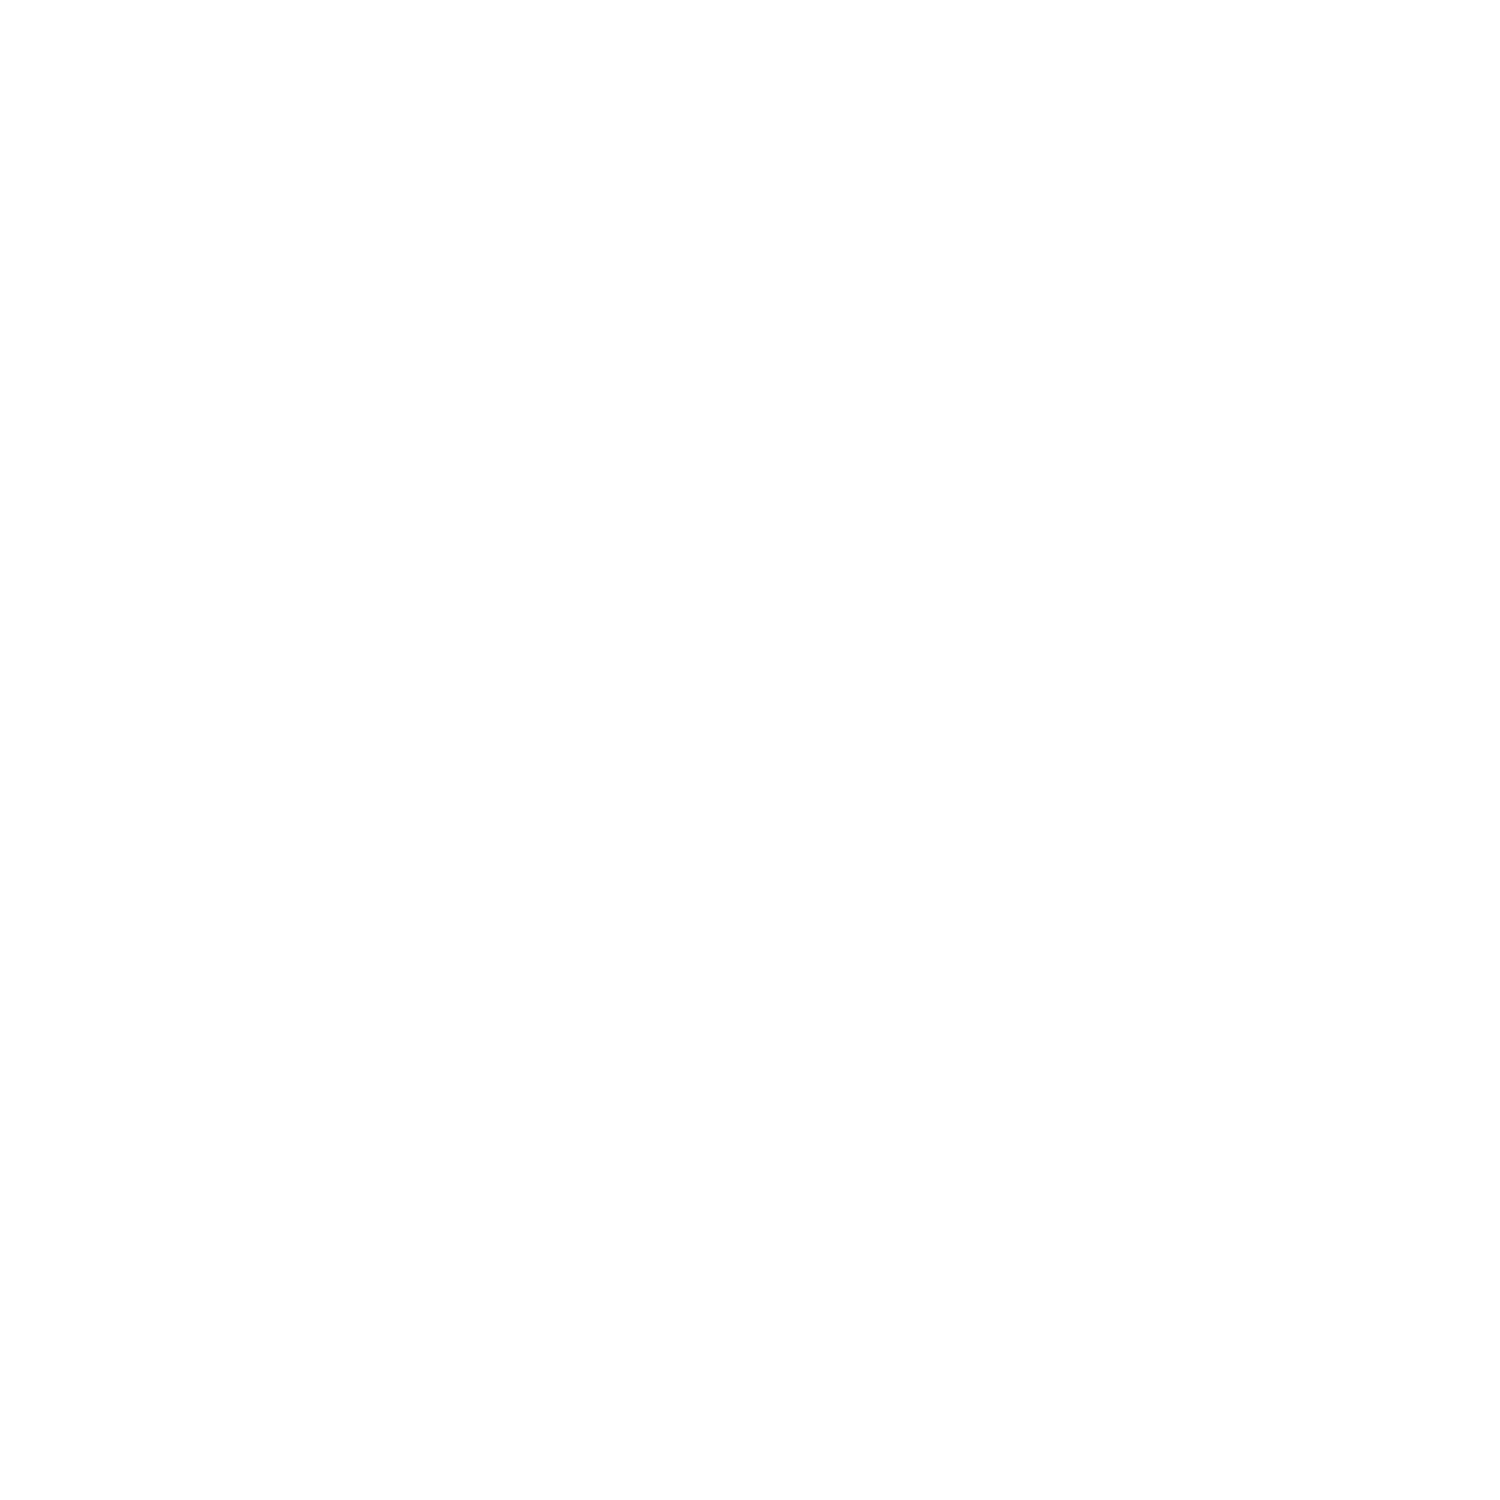 Collective Capital